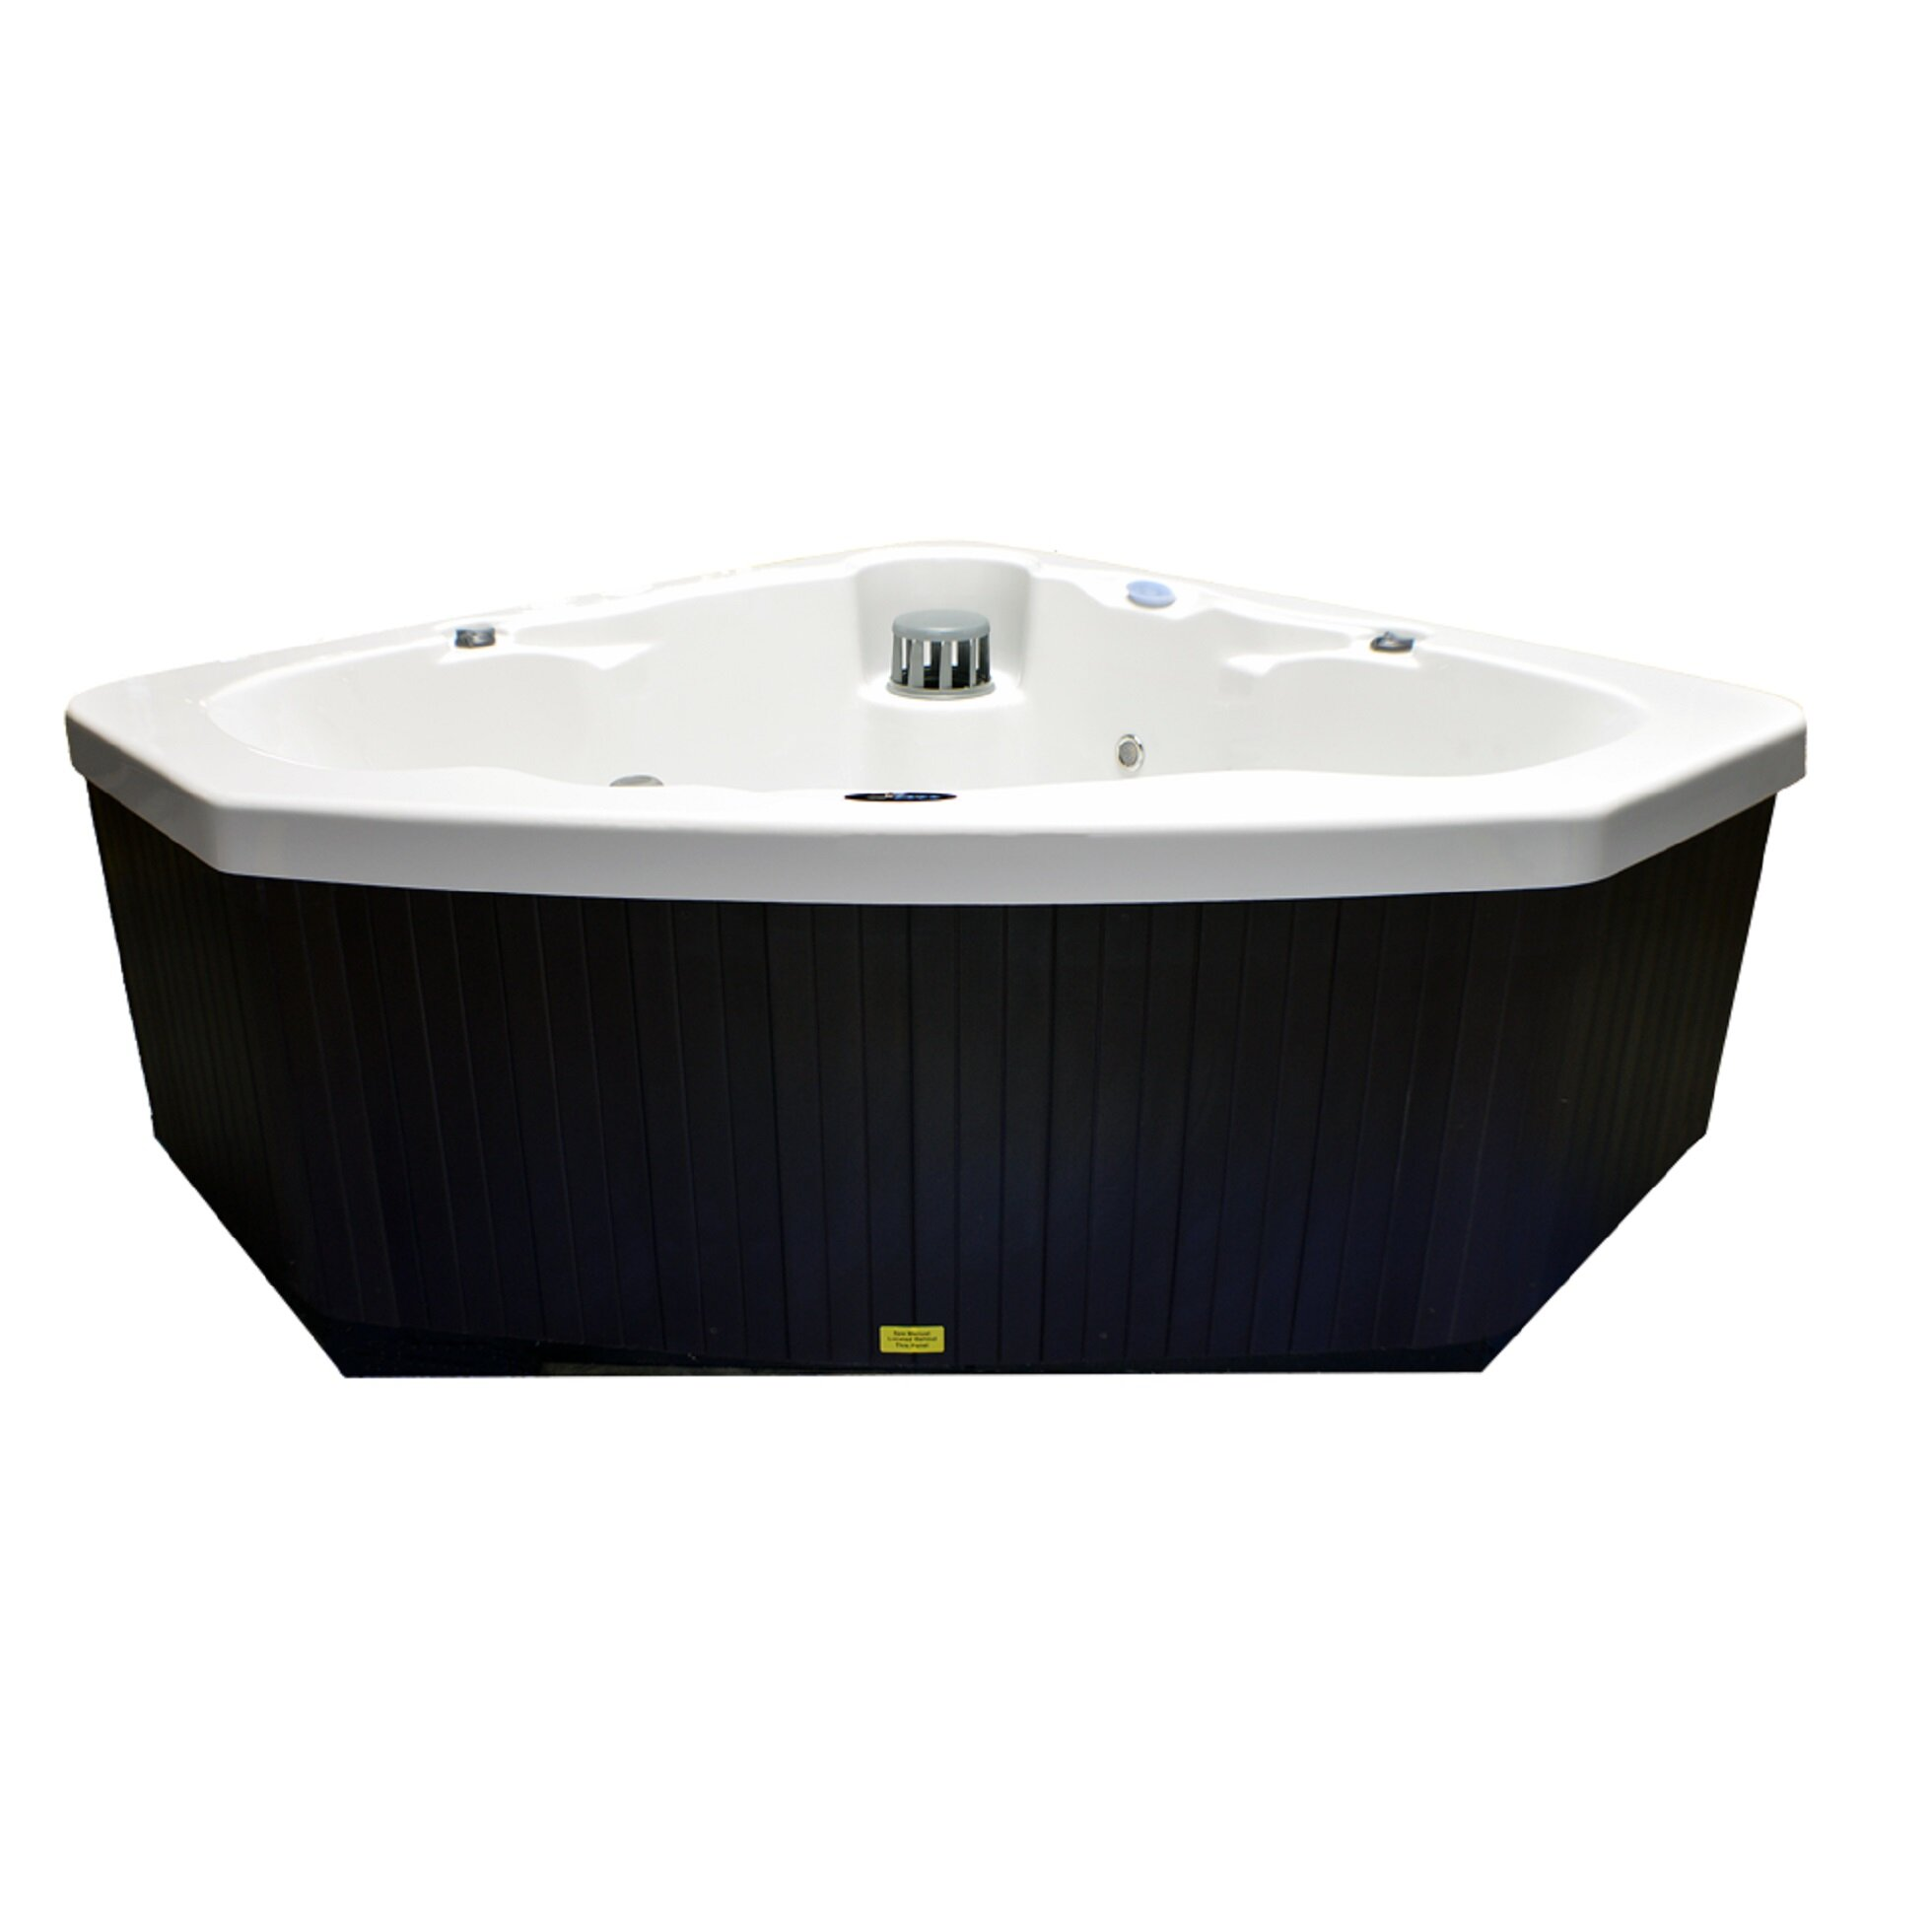 Home And Garden Spas 3 Person 14 Jet Corner Spa Whirlpool